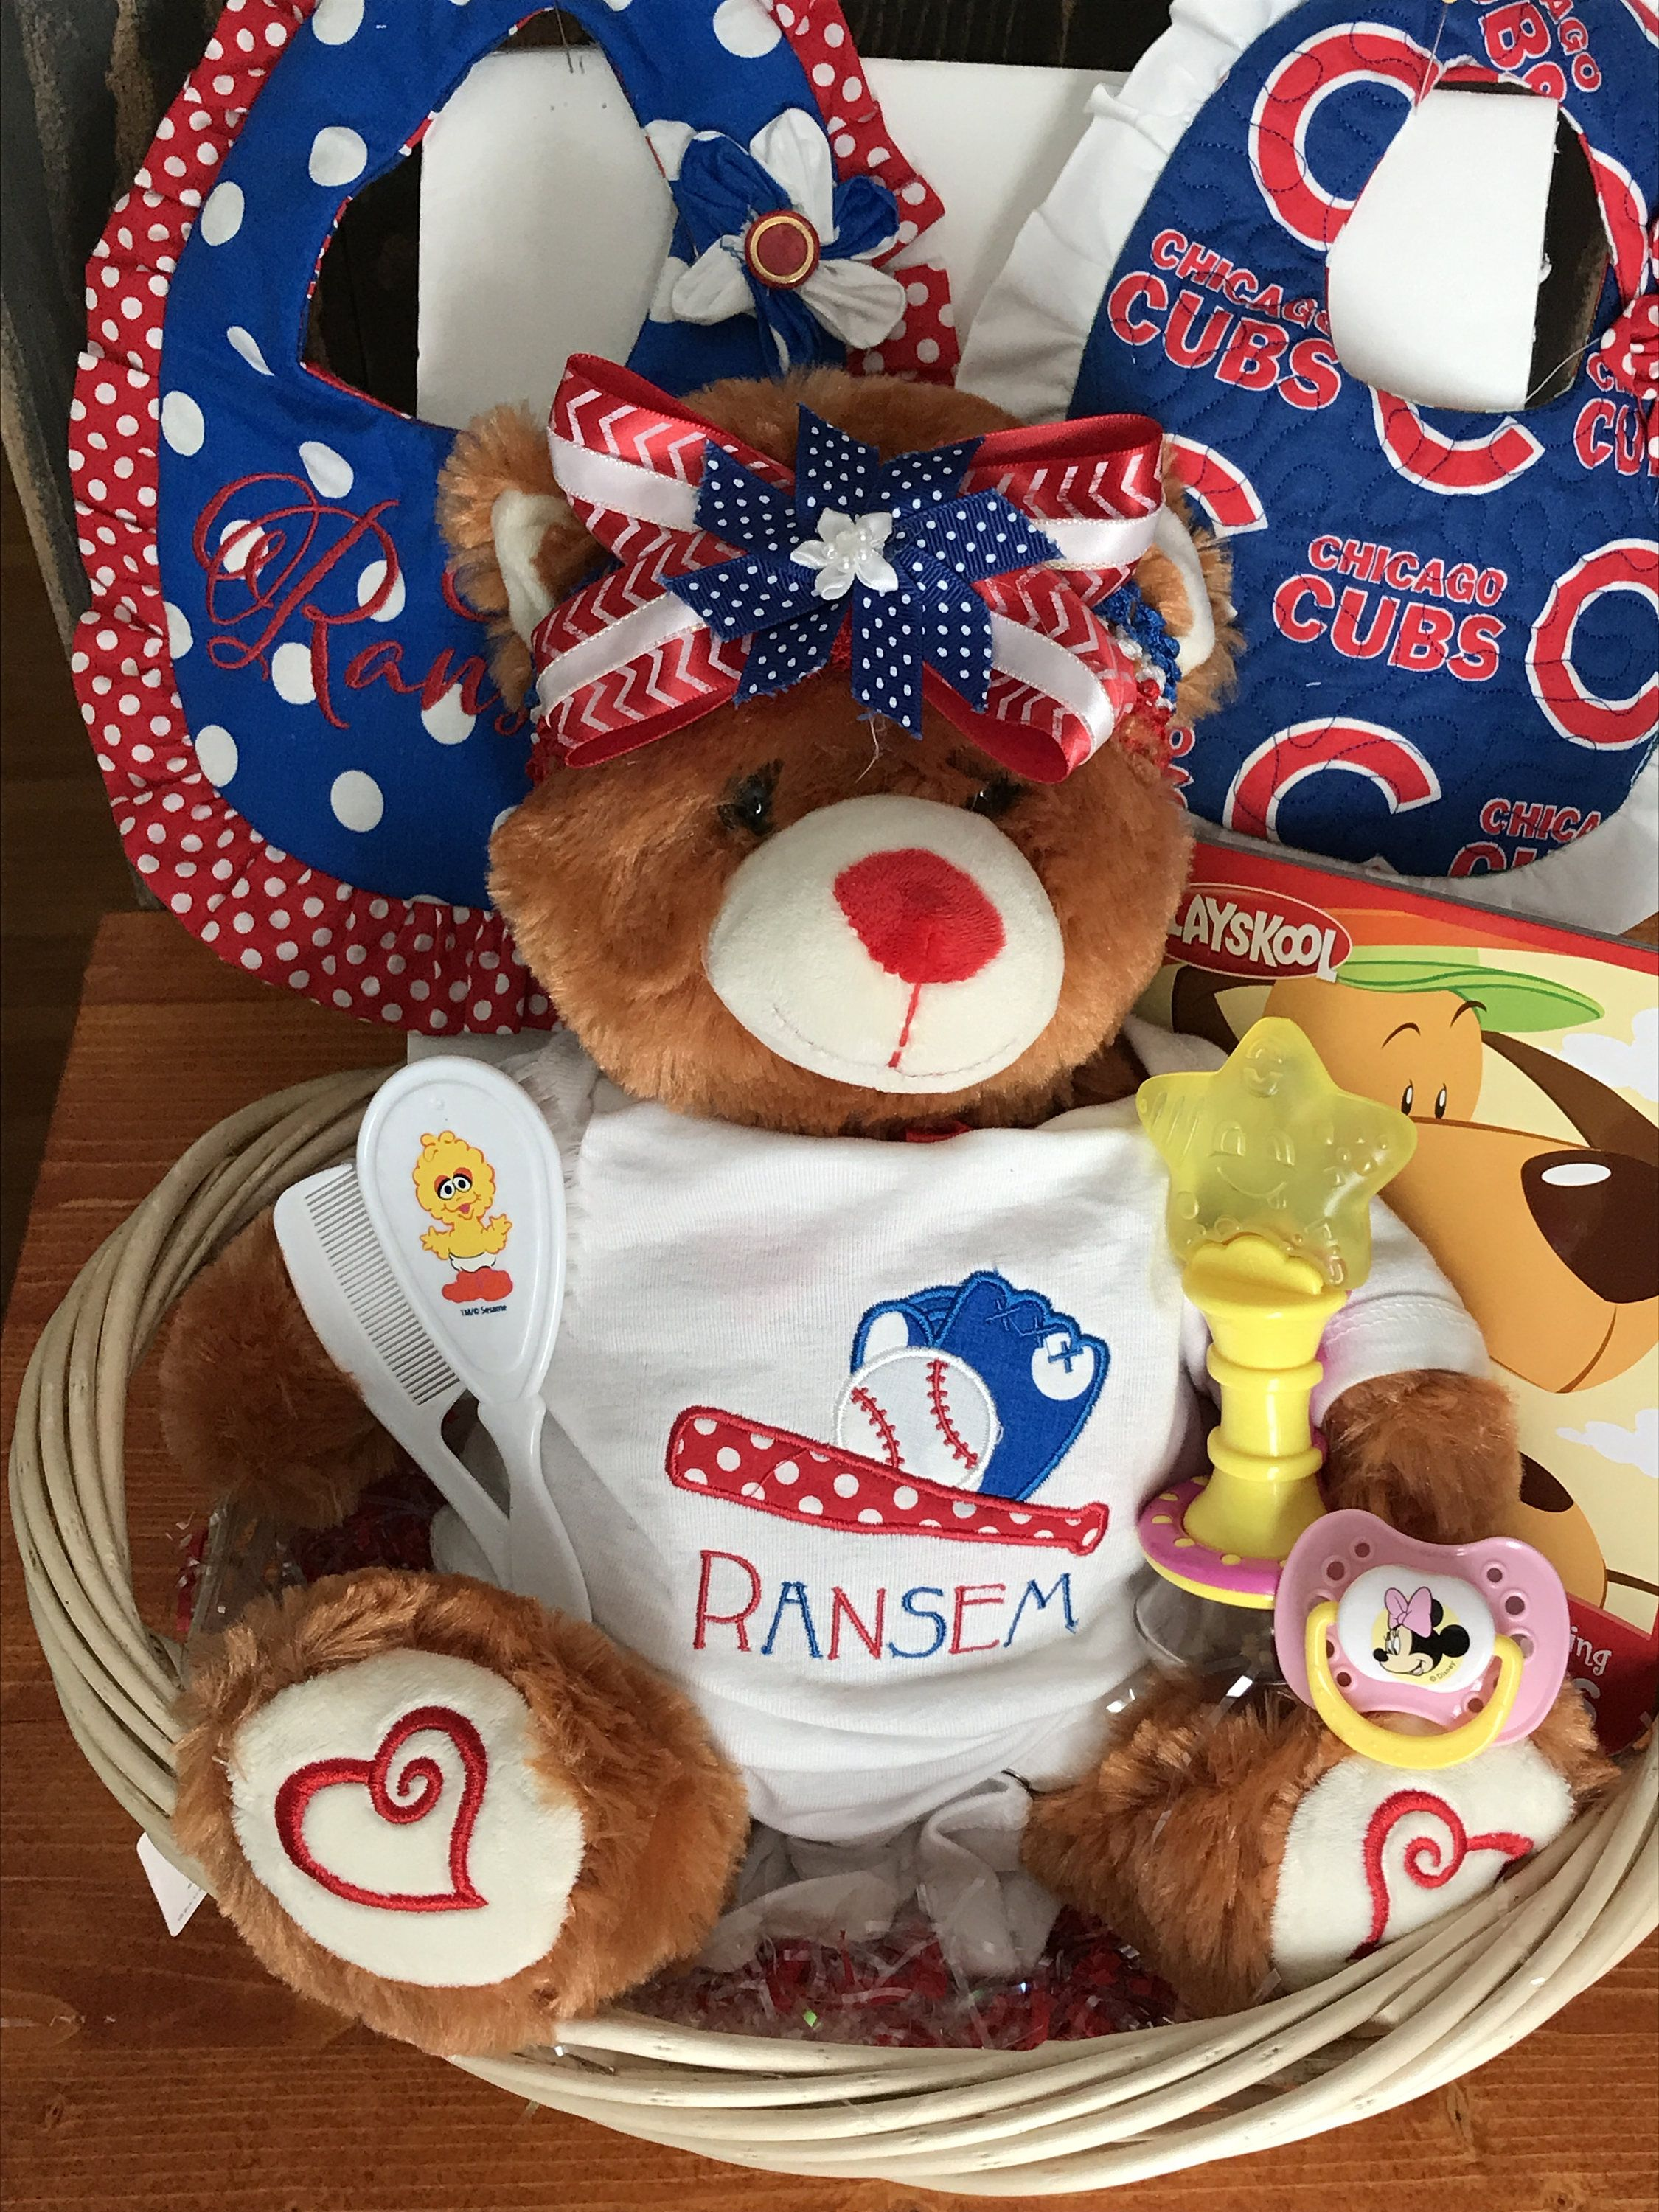 Chicago cubs baby ensemble personalized baby gift basket chicago cubs baby ensemble personalized baby gift basket monogrammed sports team outfit custom negle Gallery